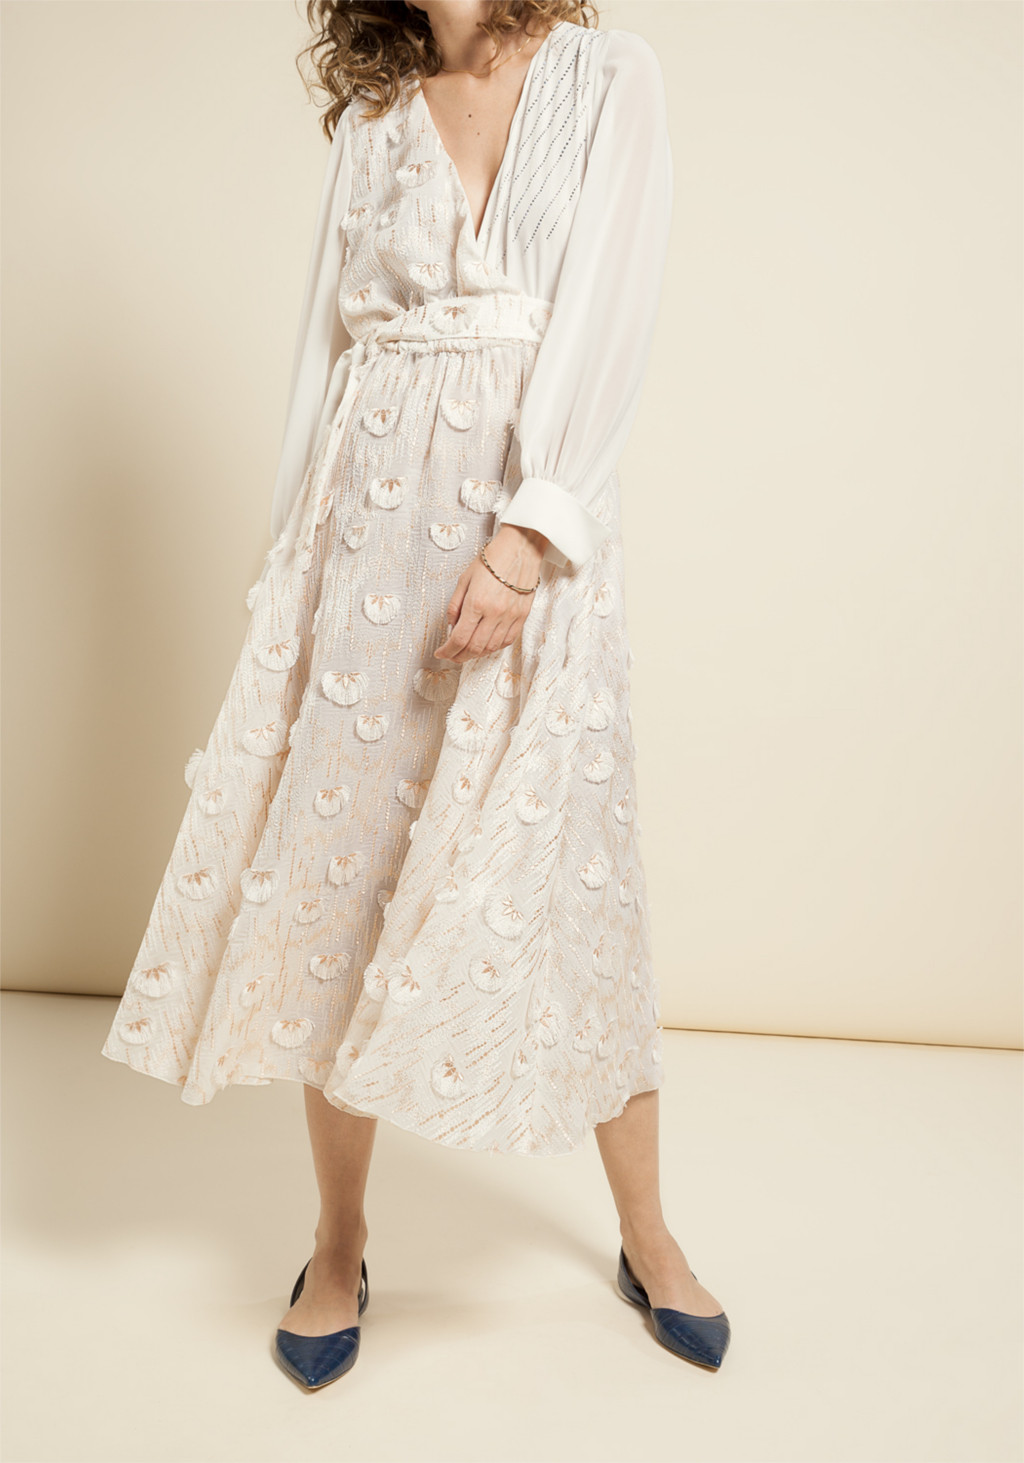 White chiffon dress with pink & white ethnic floral embroidery